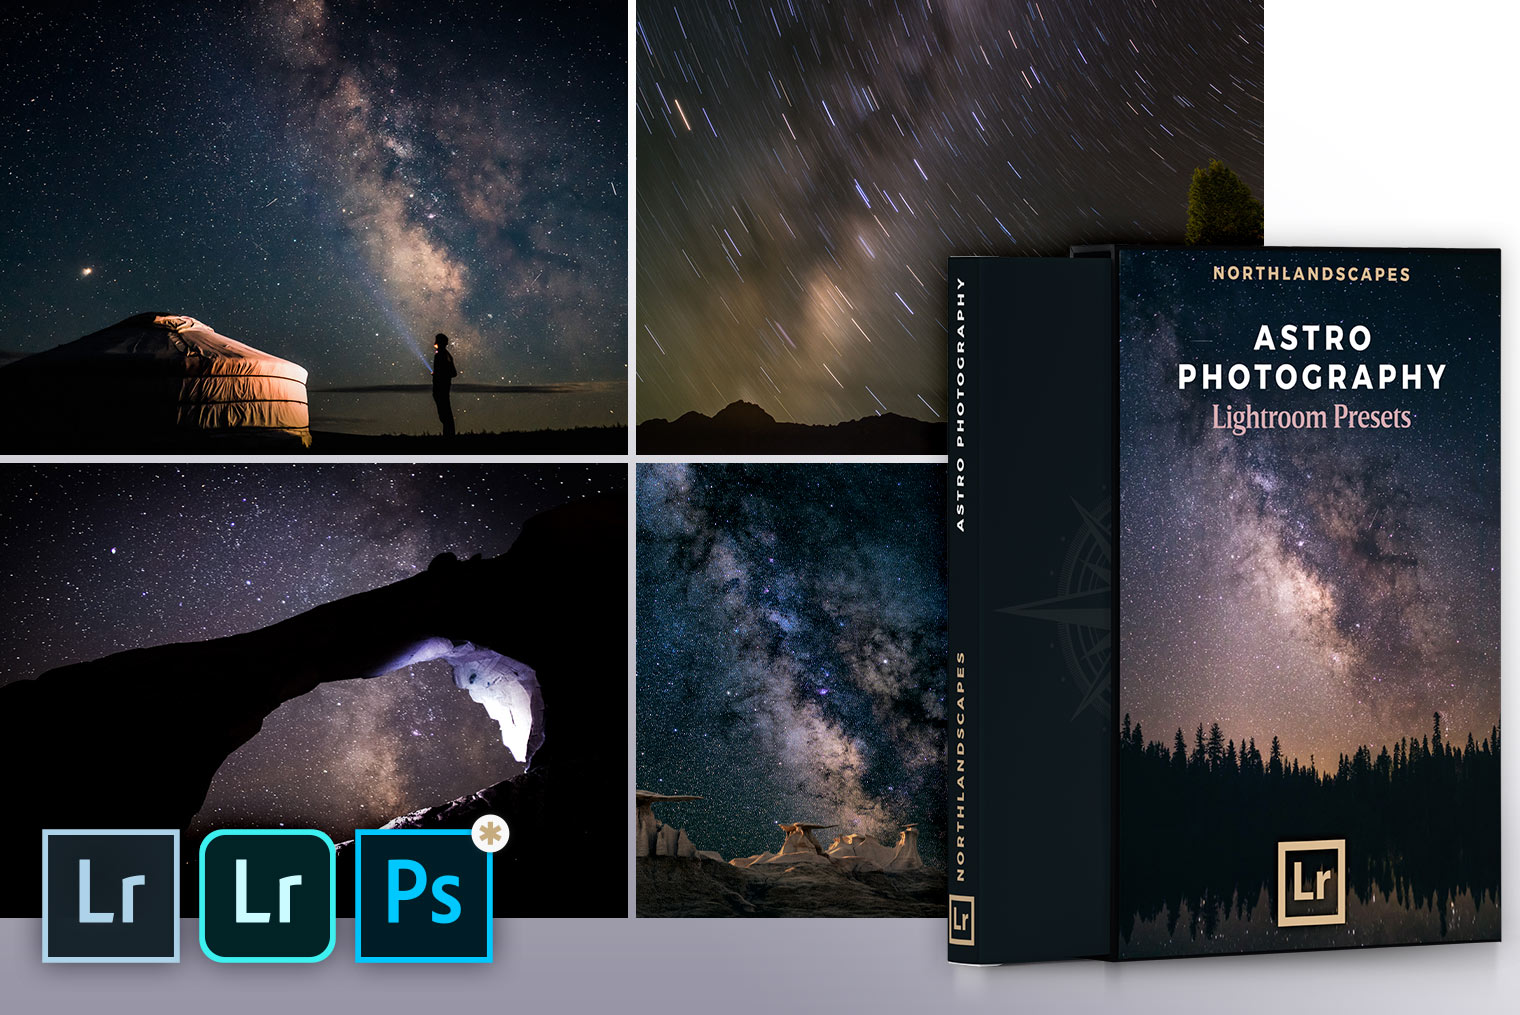 FREE Lightroom Presets for Astro Photography (Desktop & Mobile DNG Presets)